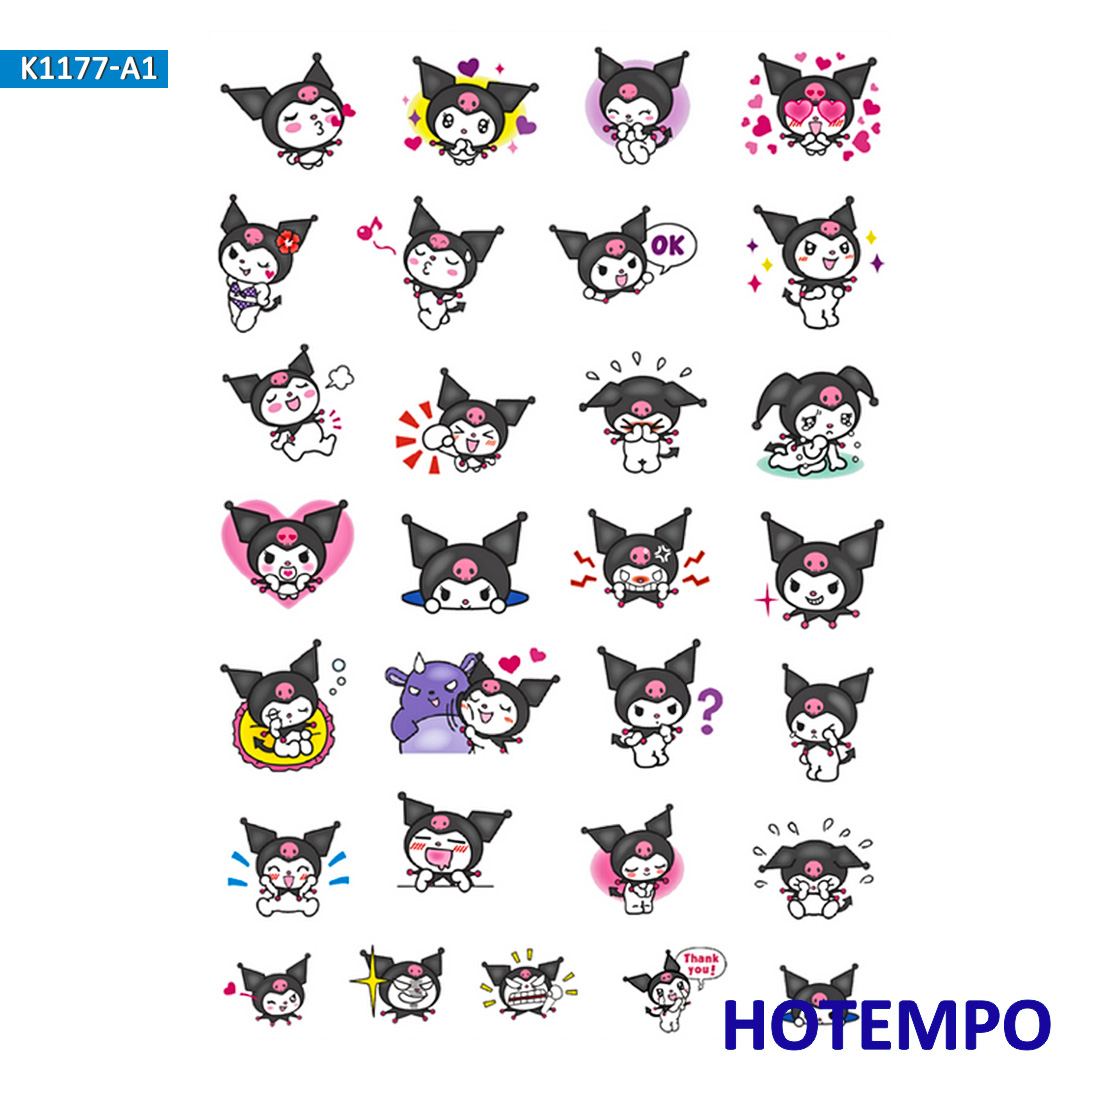 Sanrio Kuromi Melody Keroppi Pekkle Gudetama Cute Stickers For Children Letter Diary Scrapbooking Stationery Pegatinas Stickers